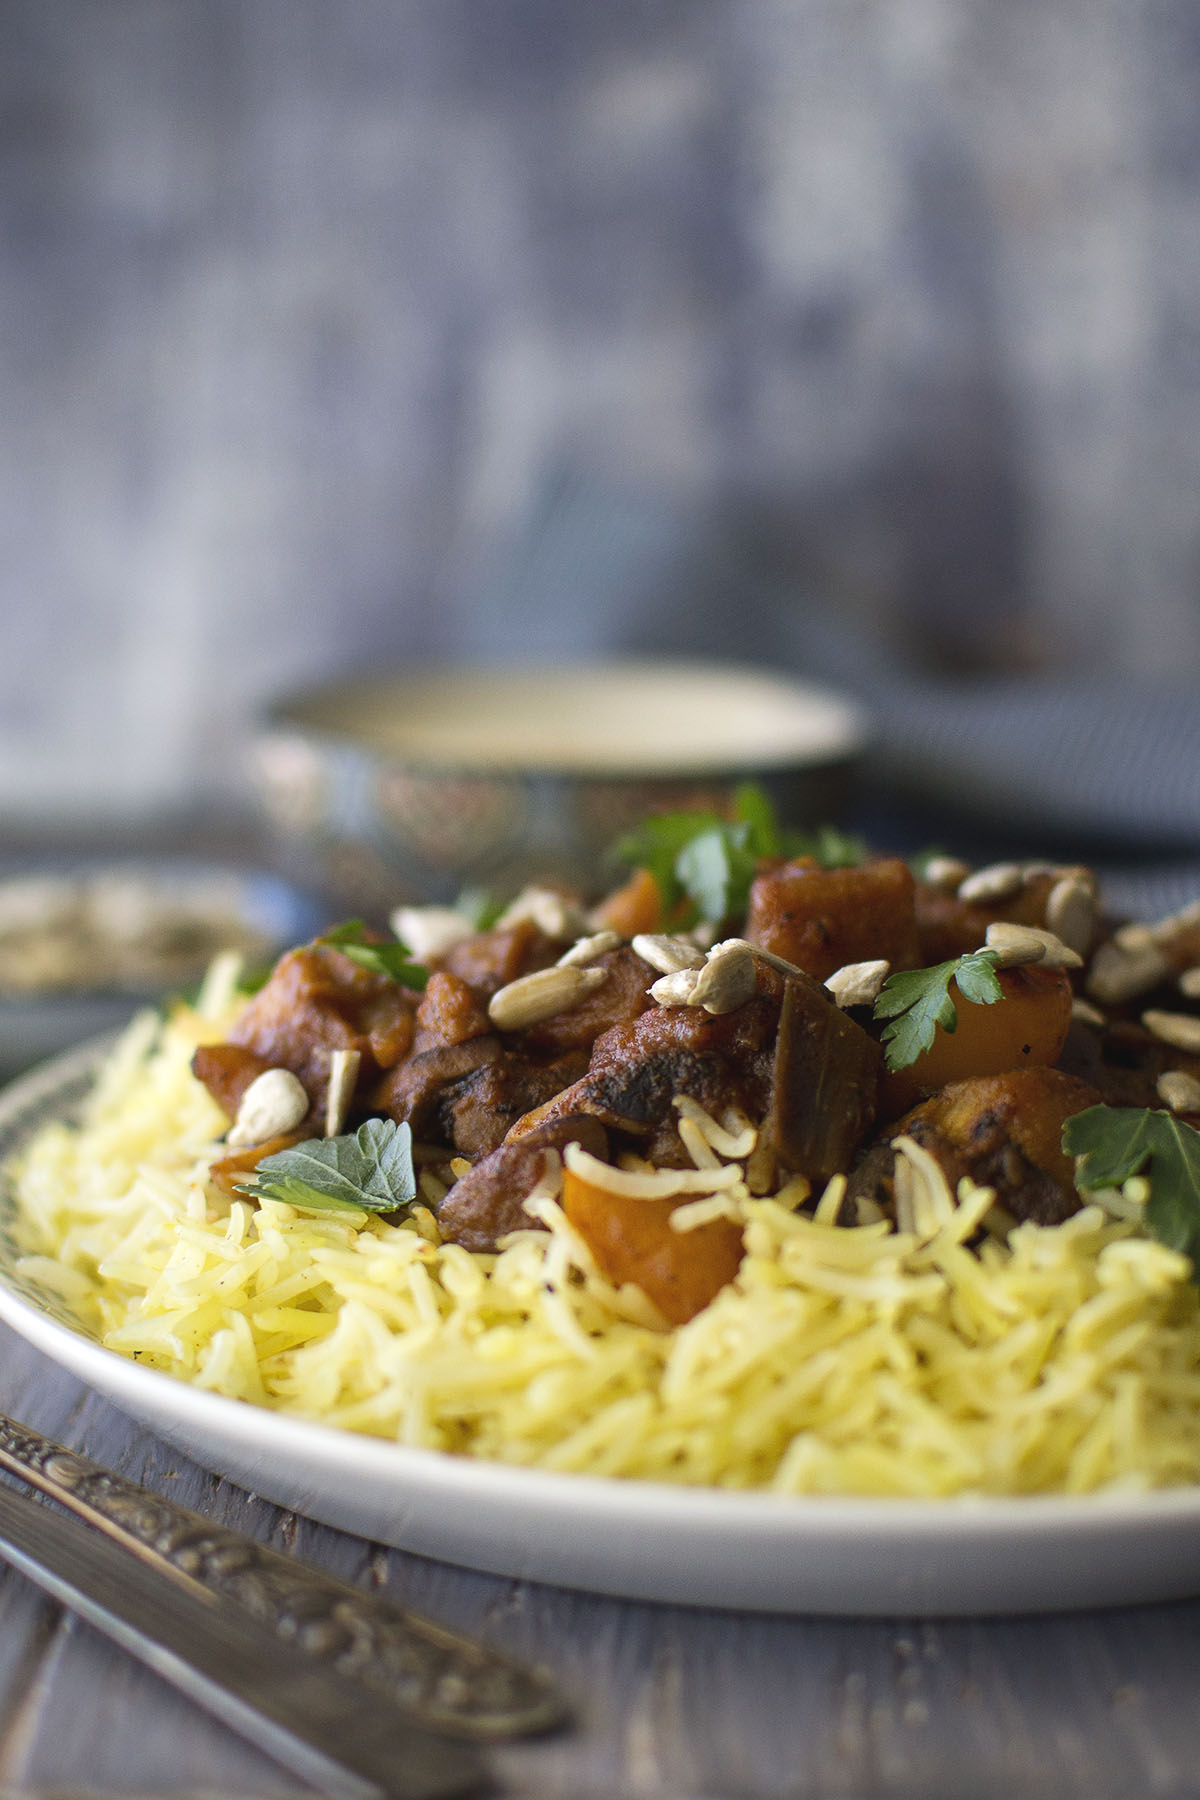 White plate with yellow rice, vegetables, sunflower seeds and parsley